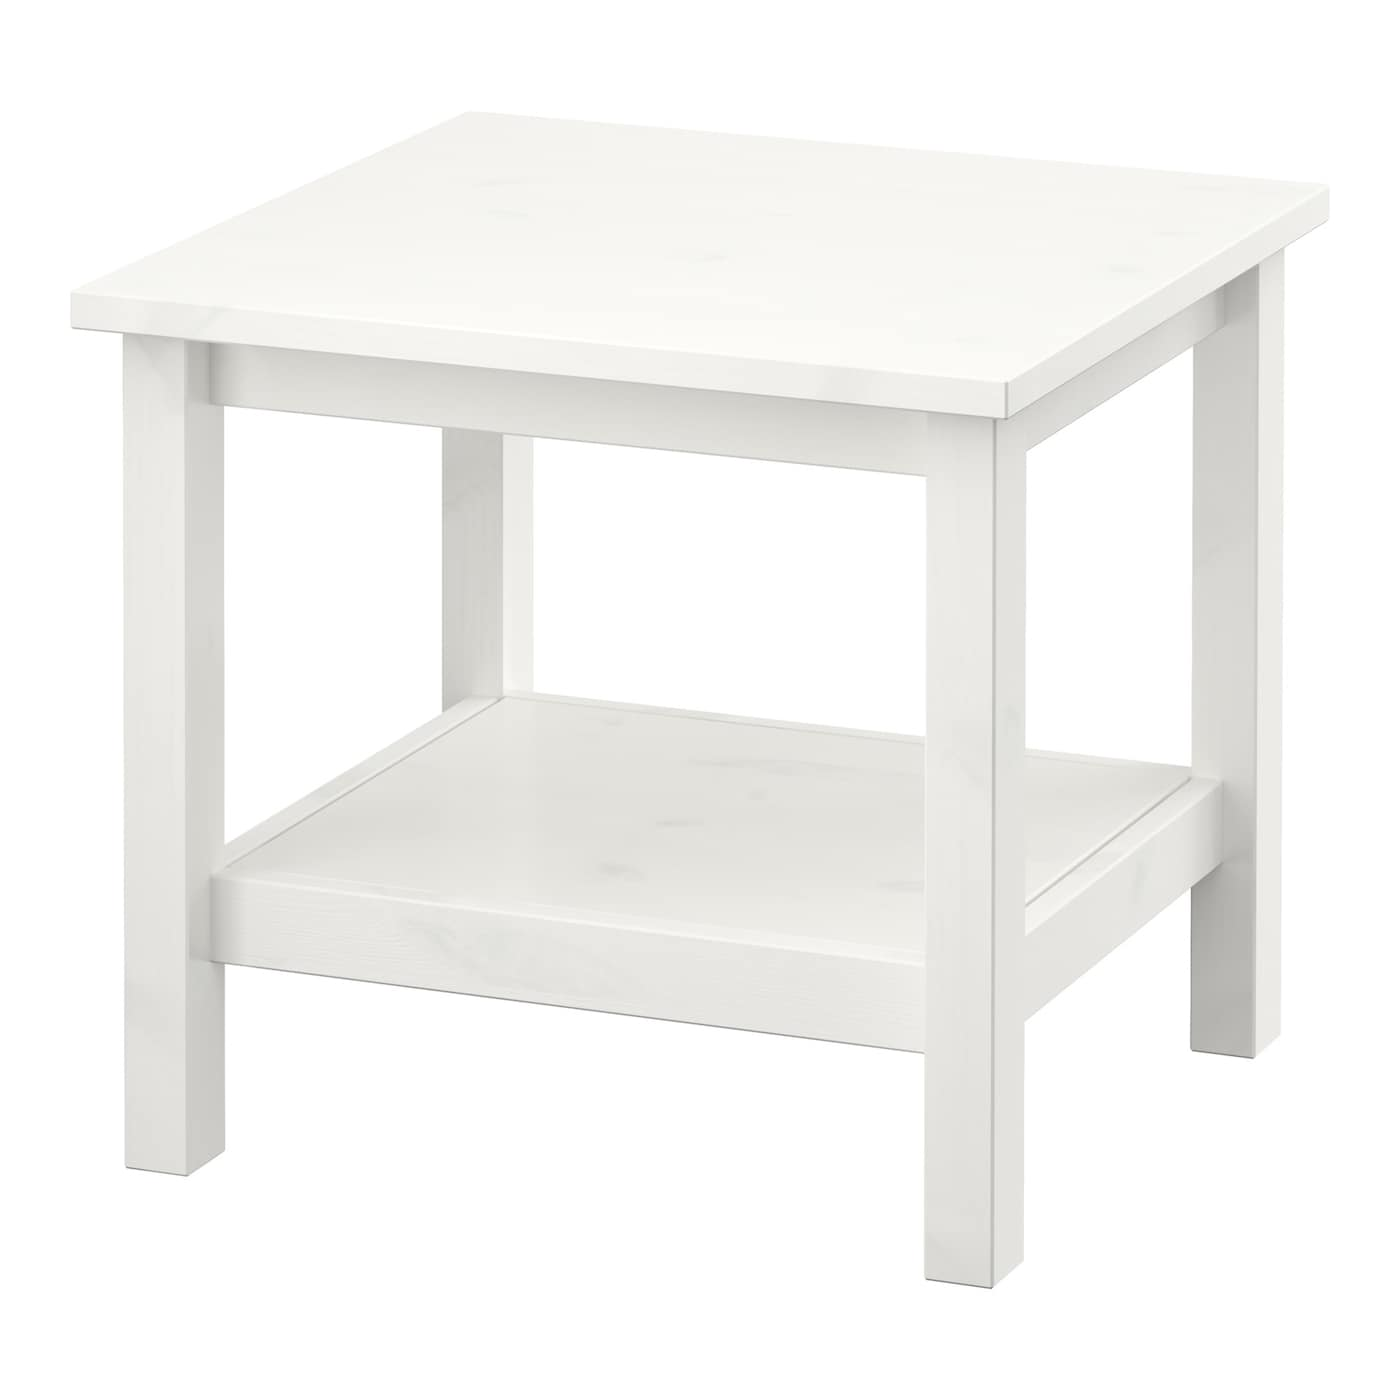 Occasional Tables Tray Storage & Window Tables